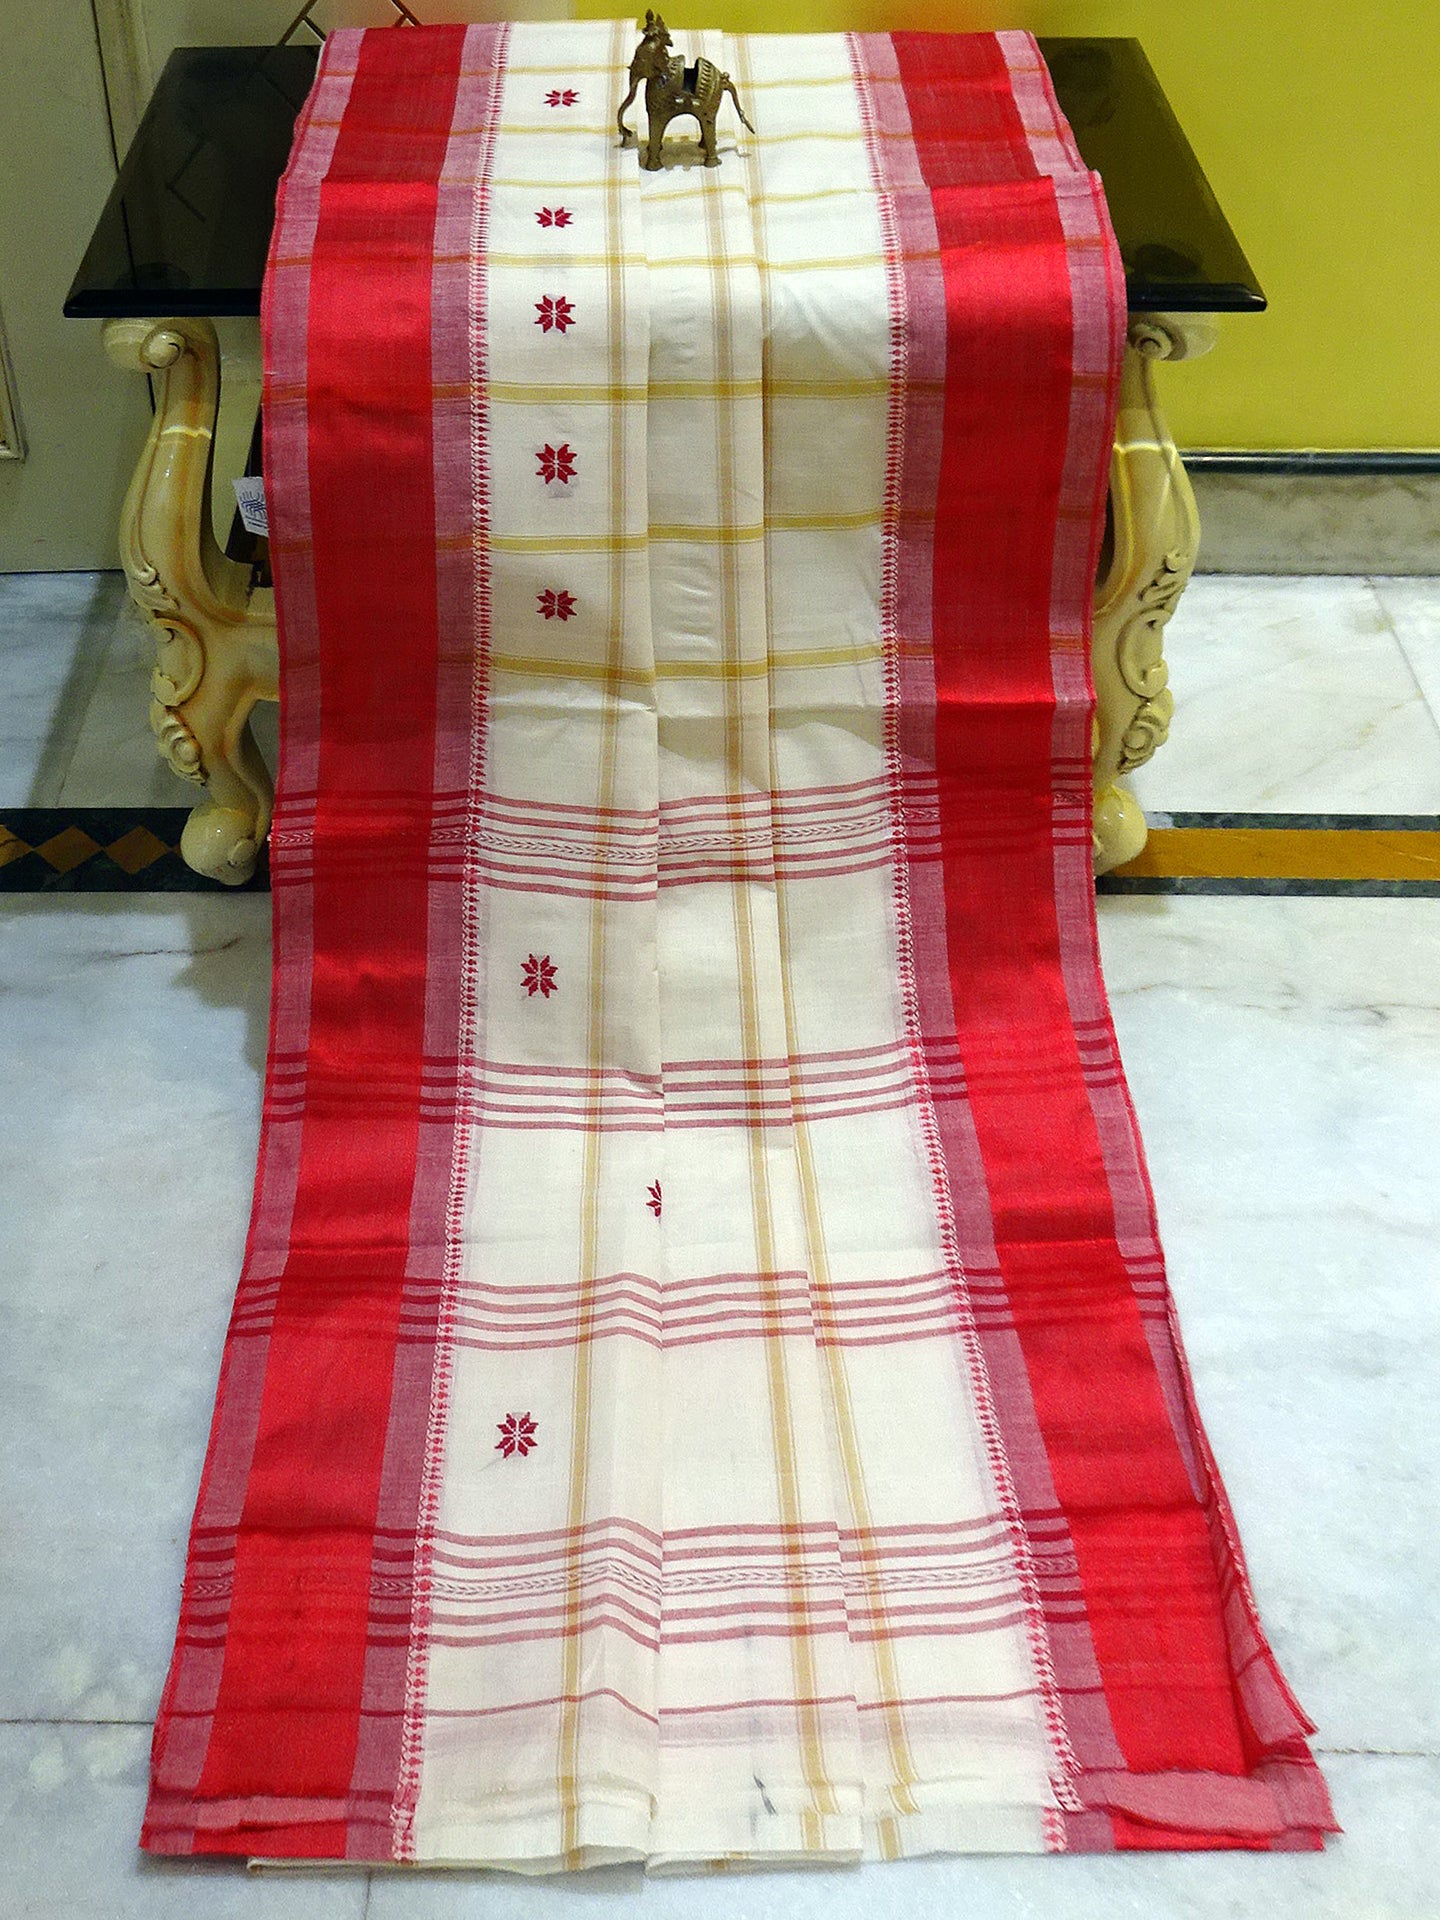 Bengal Handloom Ganga Jamuna Border Cotton Hazar Buti Saree in Peacock Blue Colour from Bengal Looms India